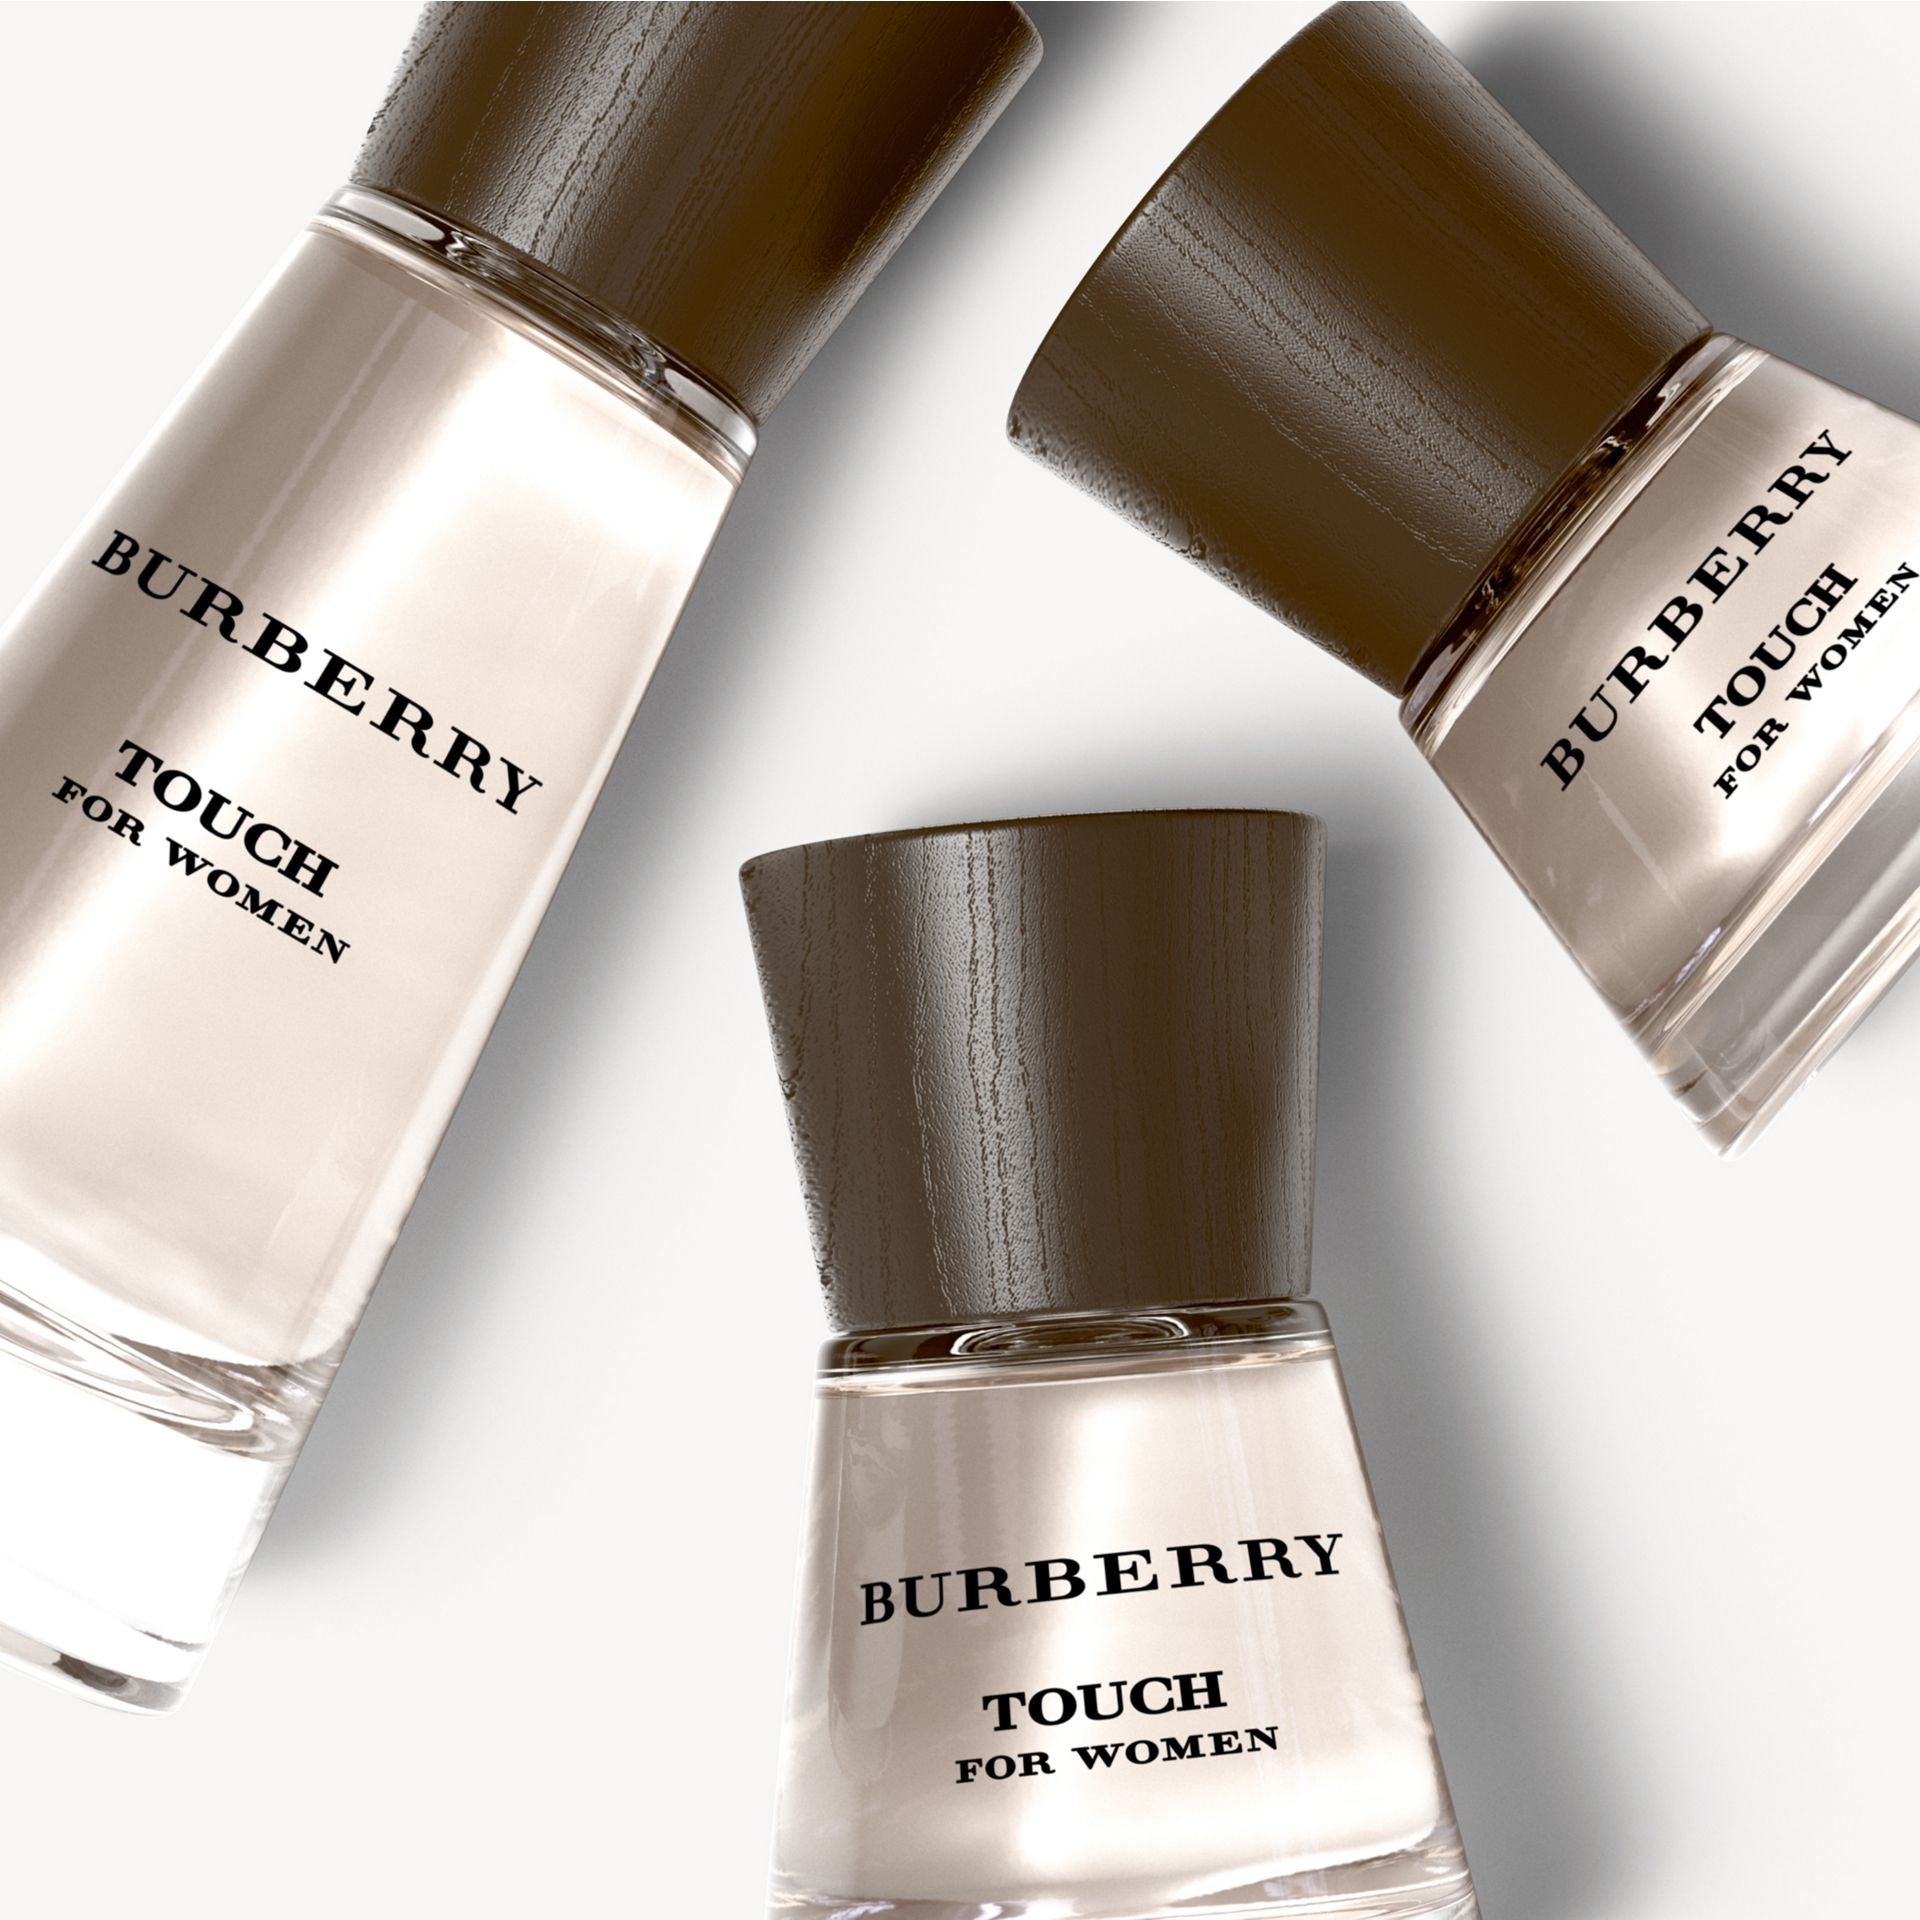 Burberry Touch Eau de Parfum 50 ml - Donna | Burberry - immagine della galleria 1